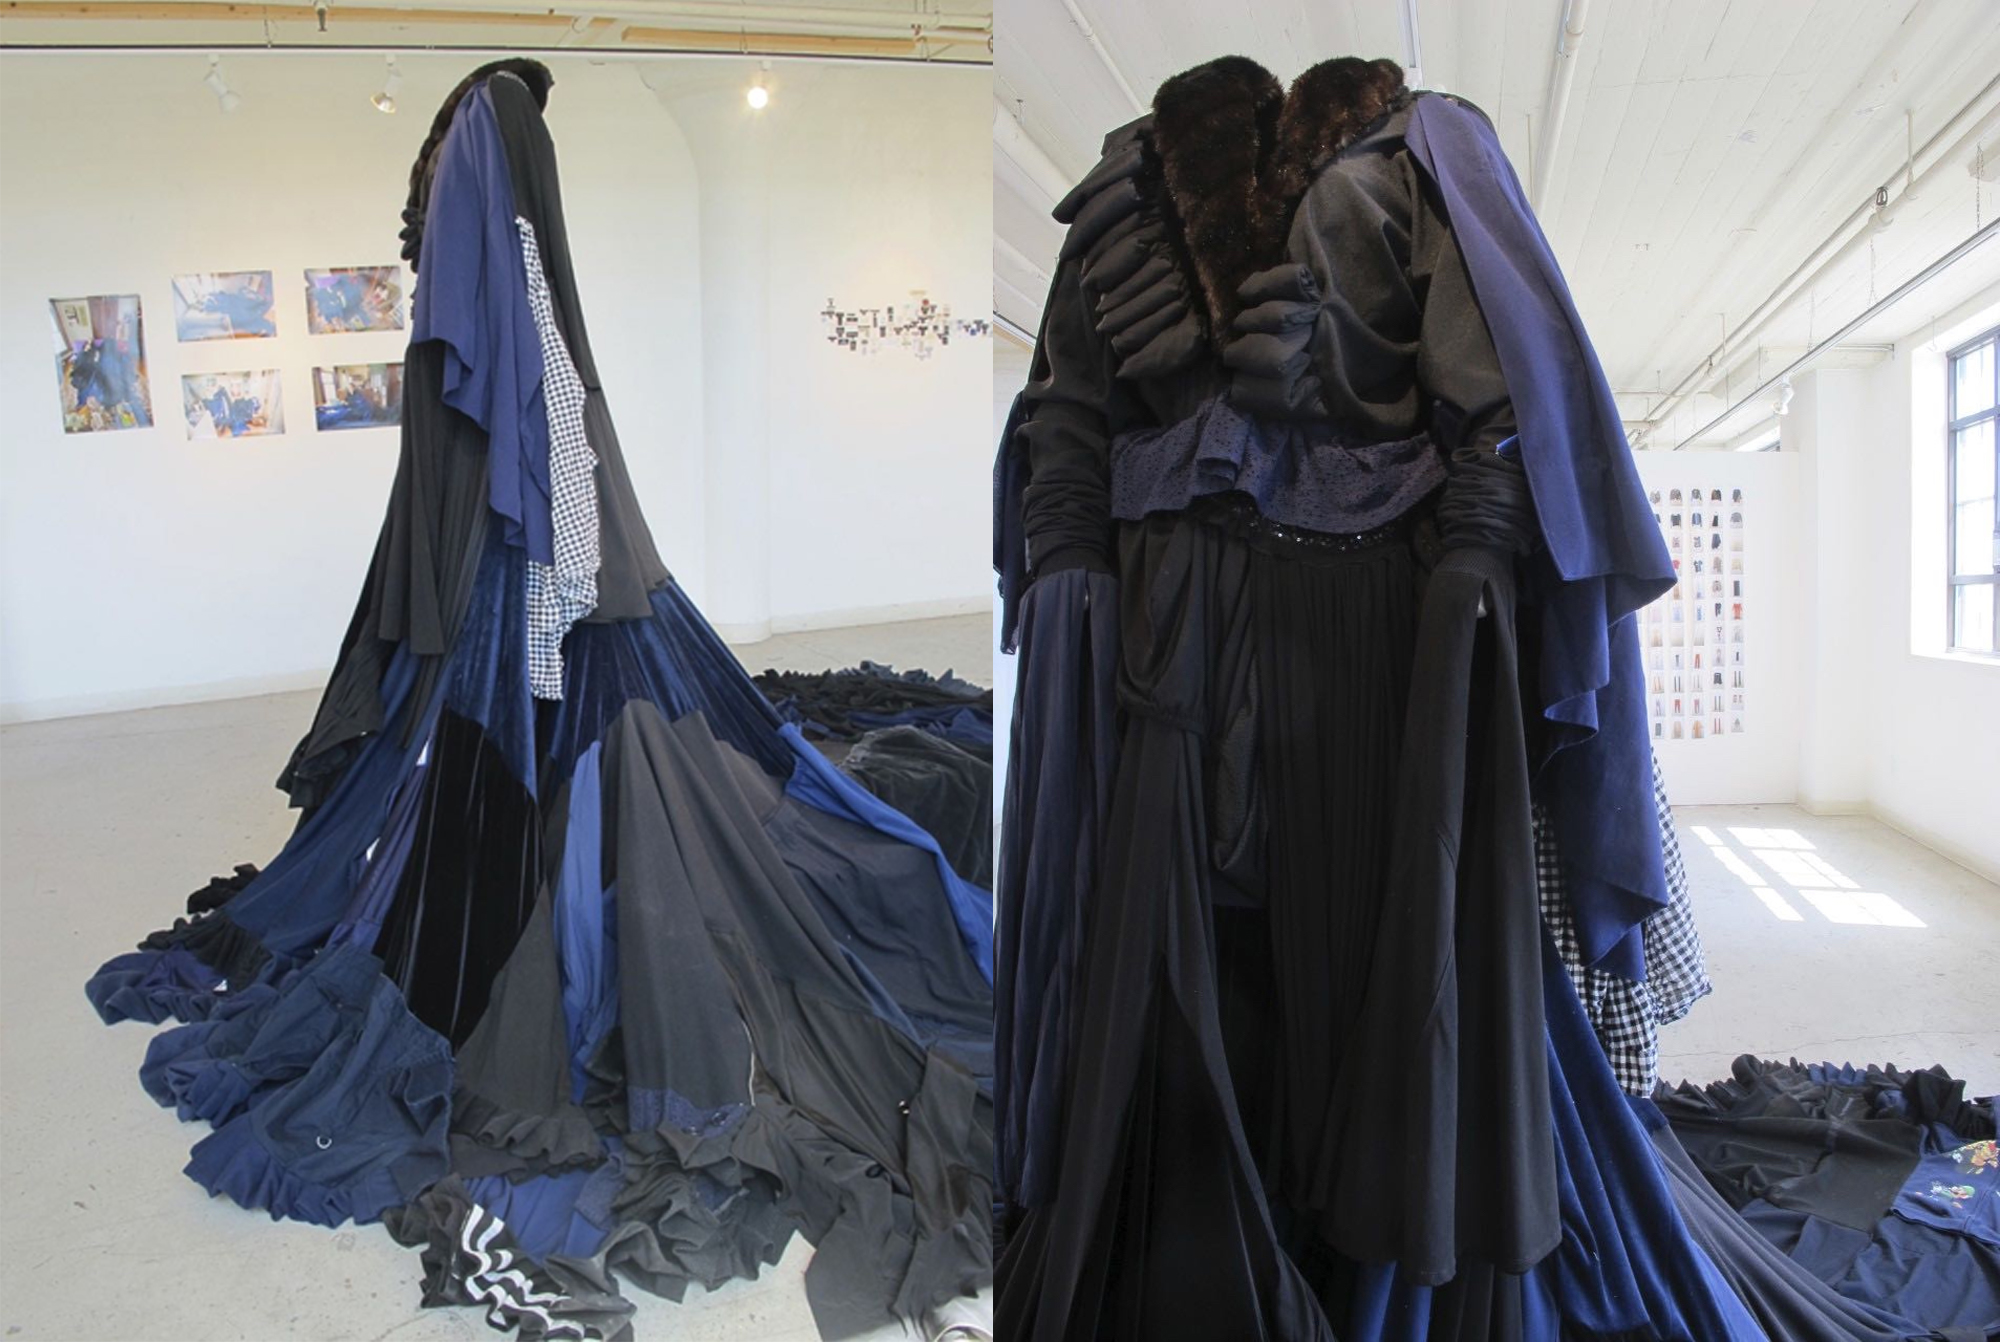 The 100 pound dress Emily Popp created entirely out of recycled clothing. It's a mixture of black and blue garments combined into one large, flowing dress.